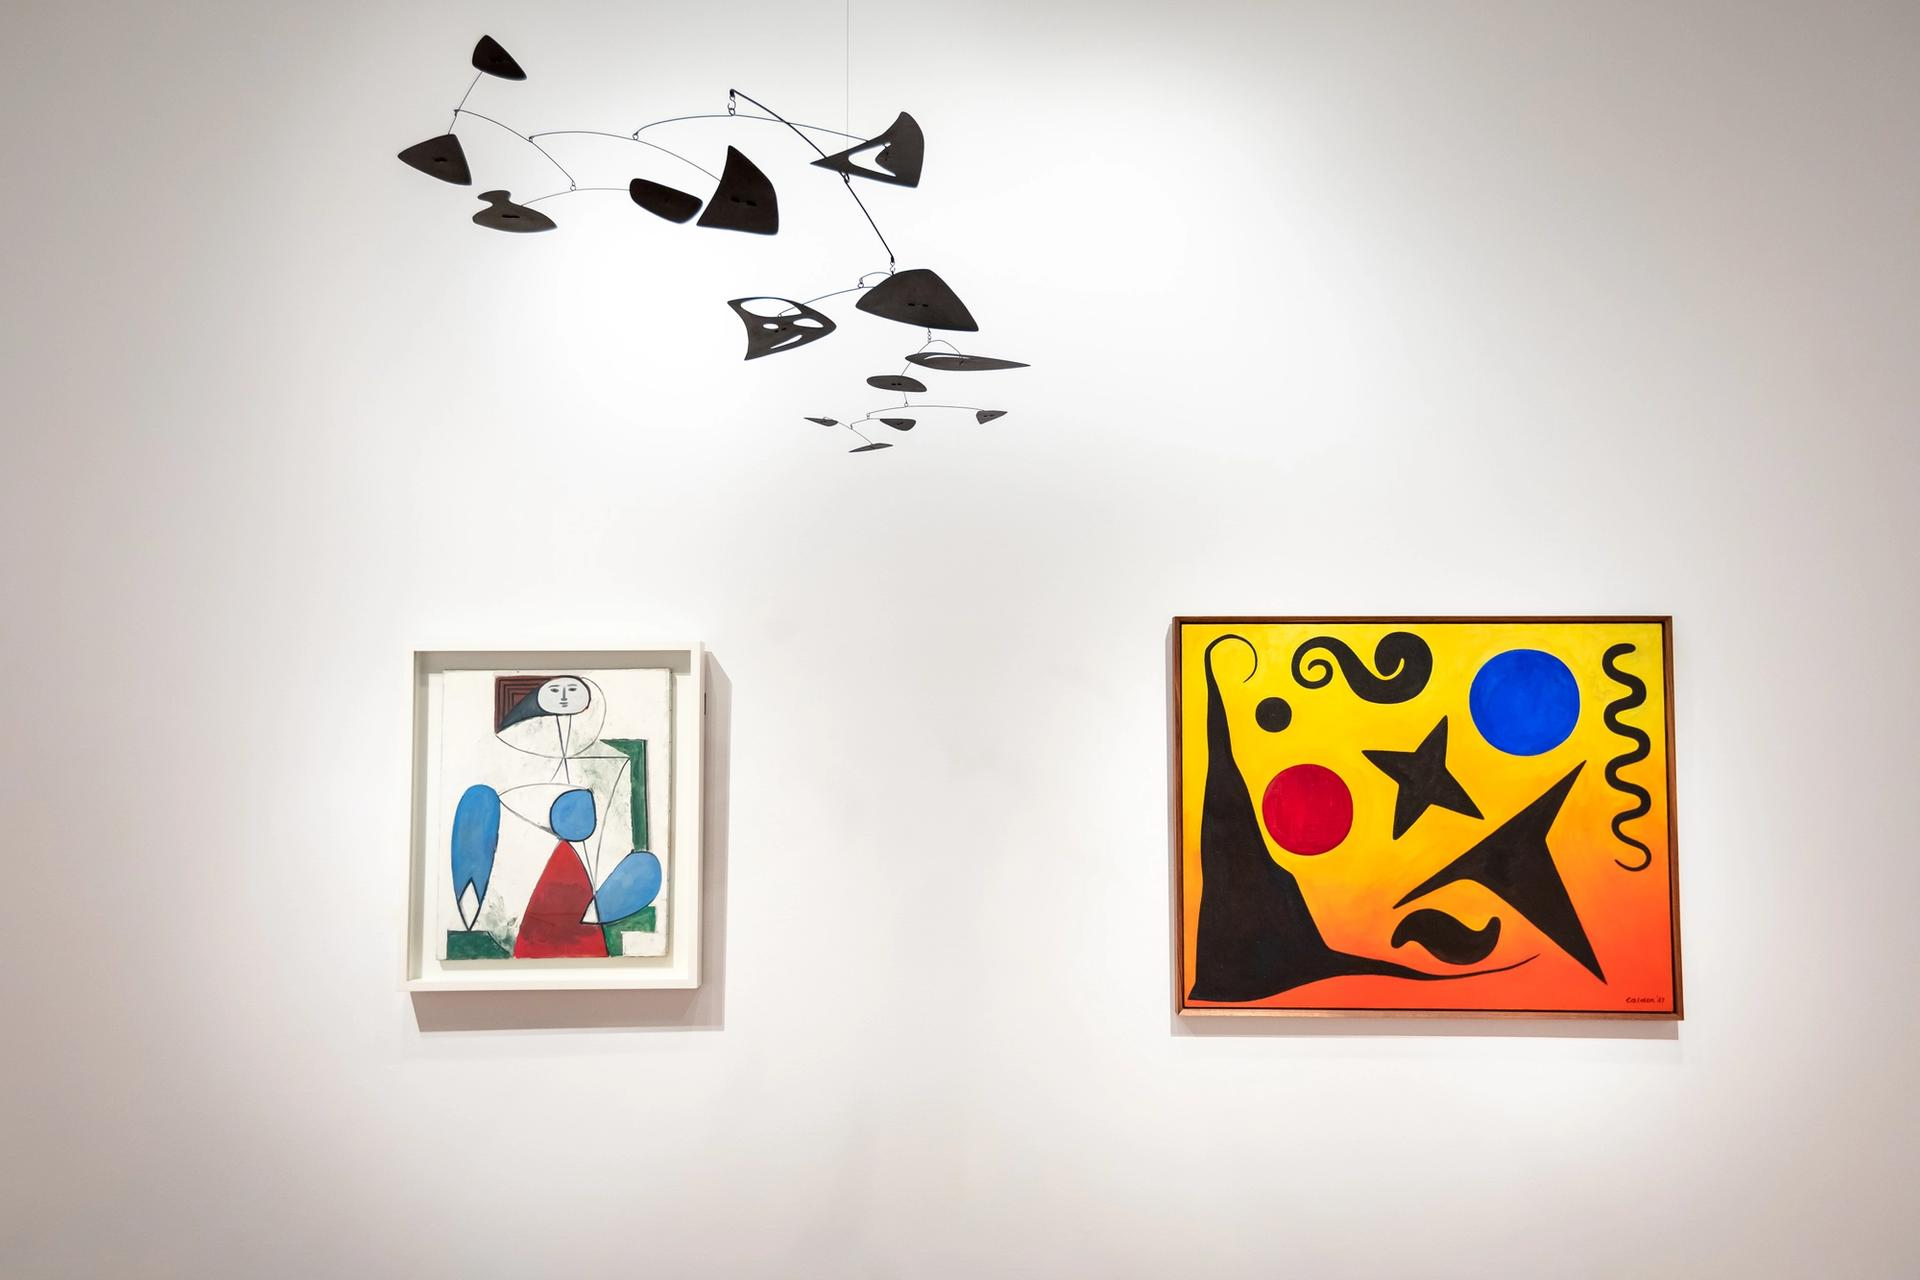 Installation view of 'Calder-Picasso' at the de Young Museum Photo: Gary Sexton, courtesy of the Fine Arts Museums of San Francisco © 2021 Calder Foundation, New York / Artists Rights Society (ARS), New York